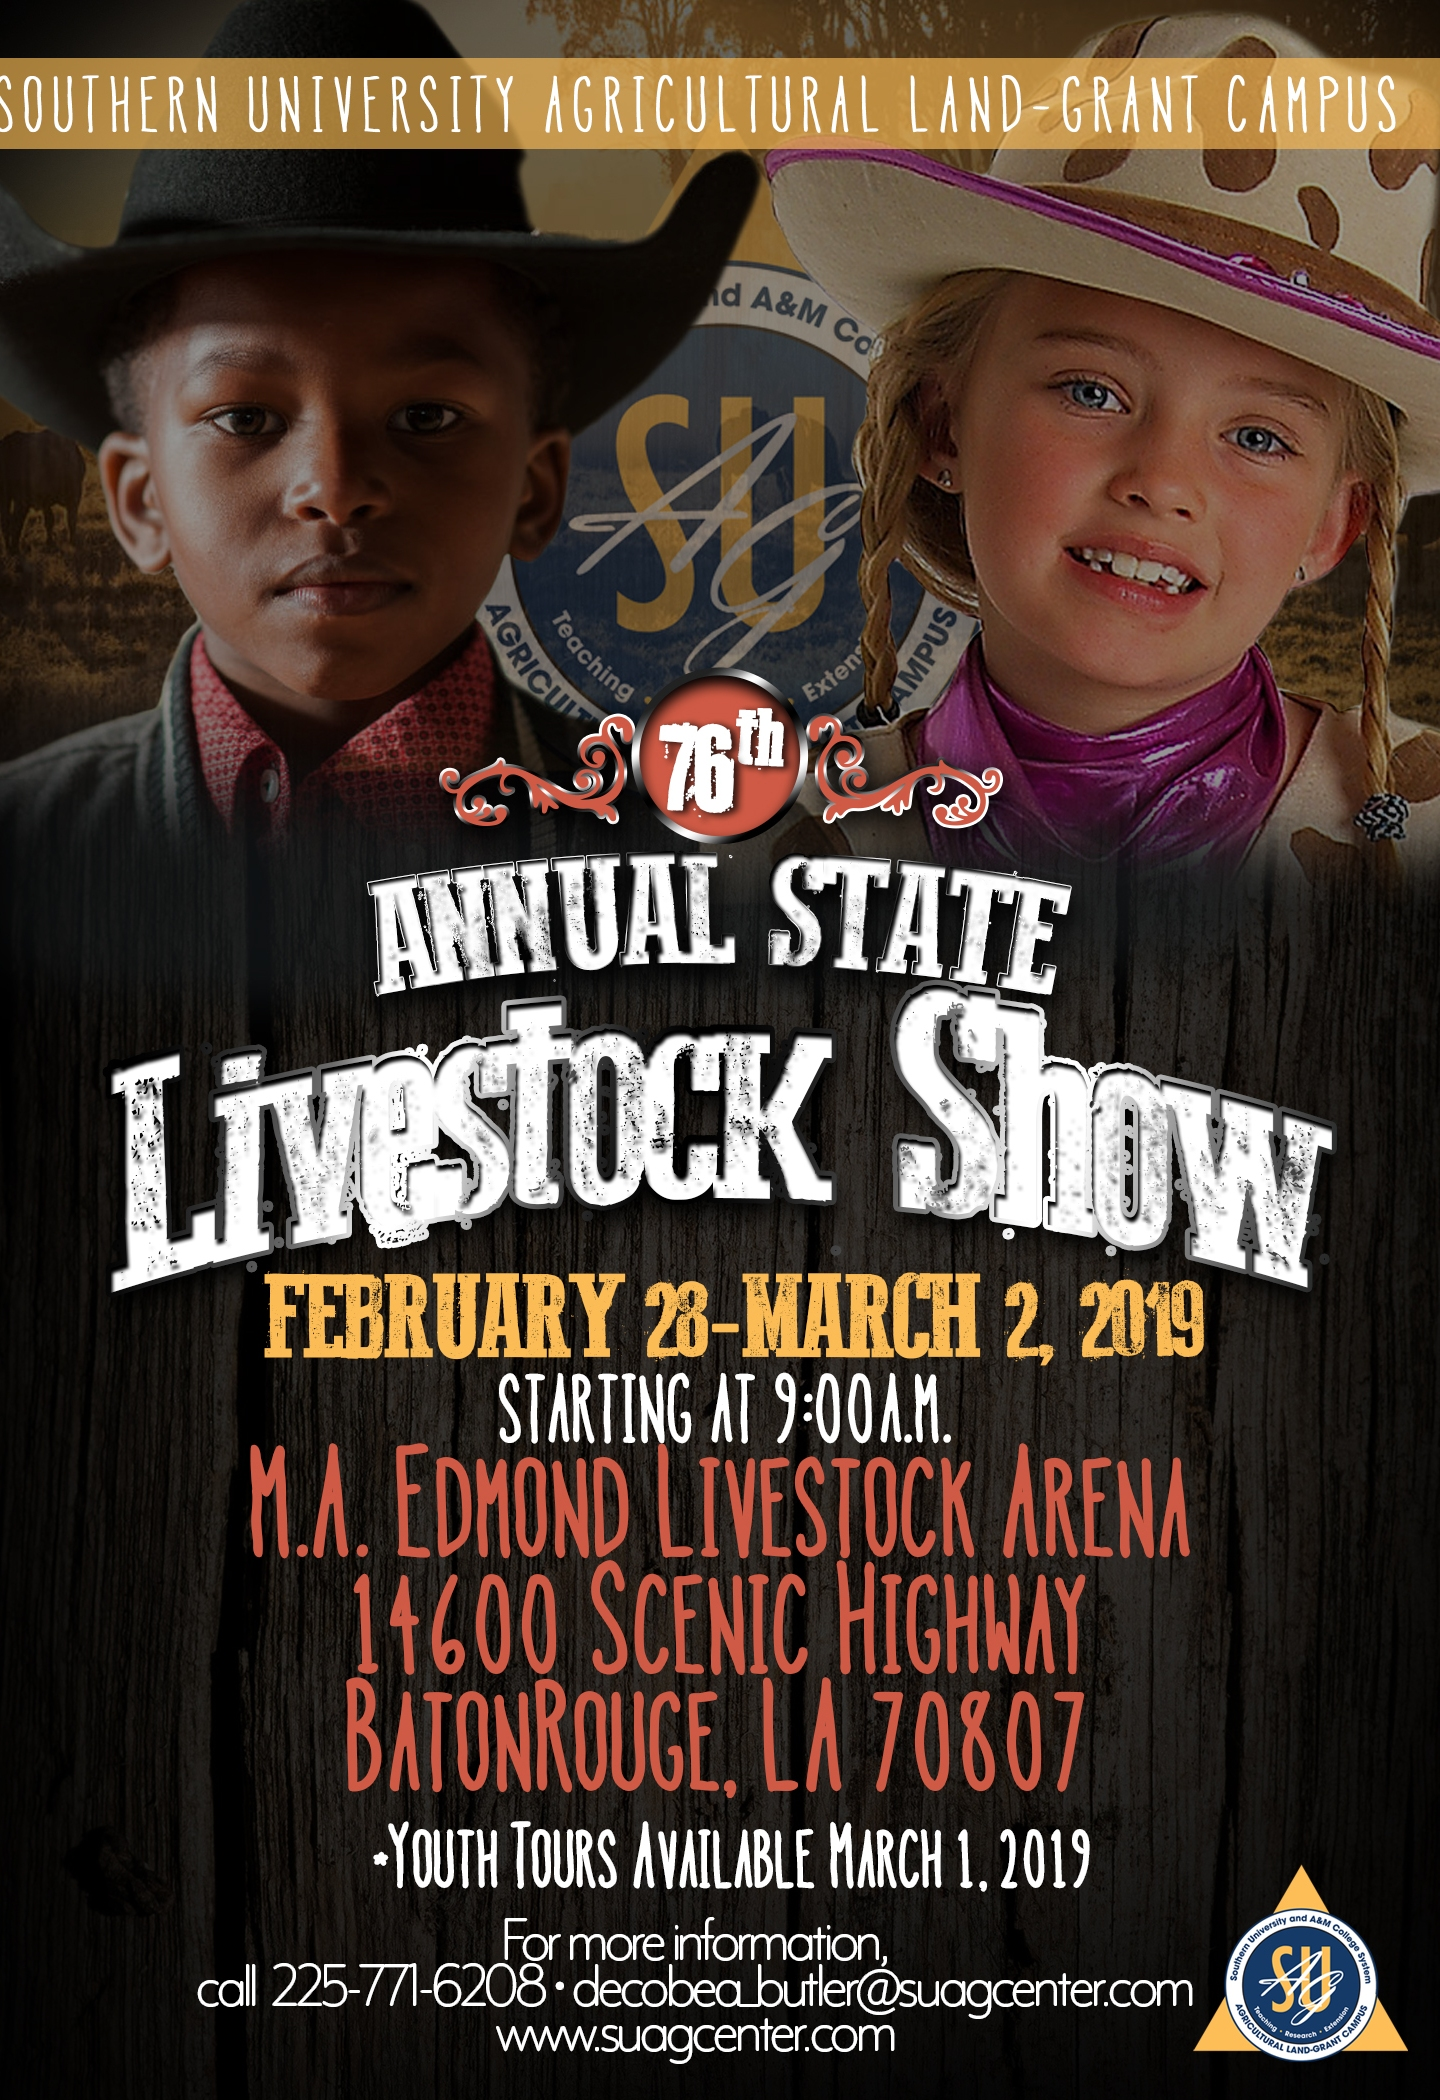 OFFICIAL Livestock Flyer 2019_1551388680292.jpg.jpg